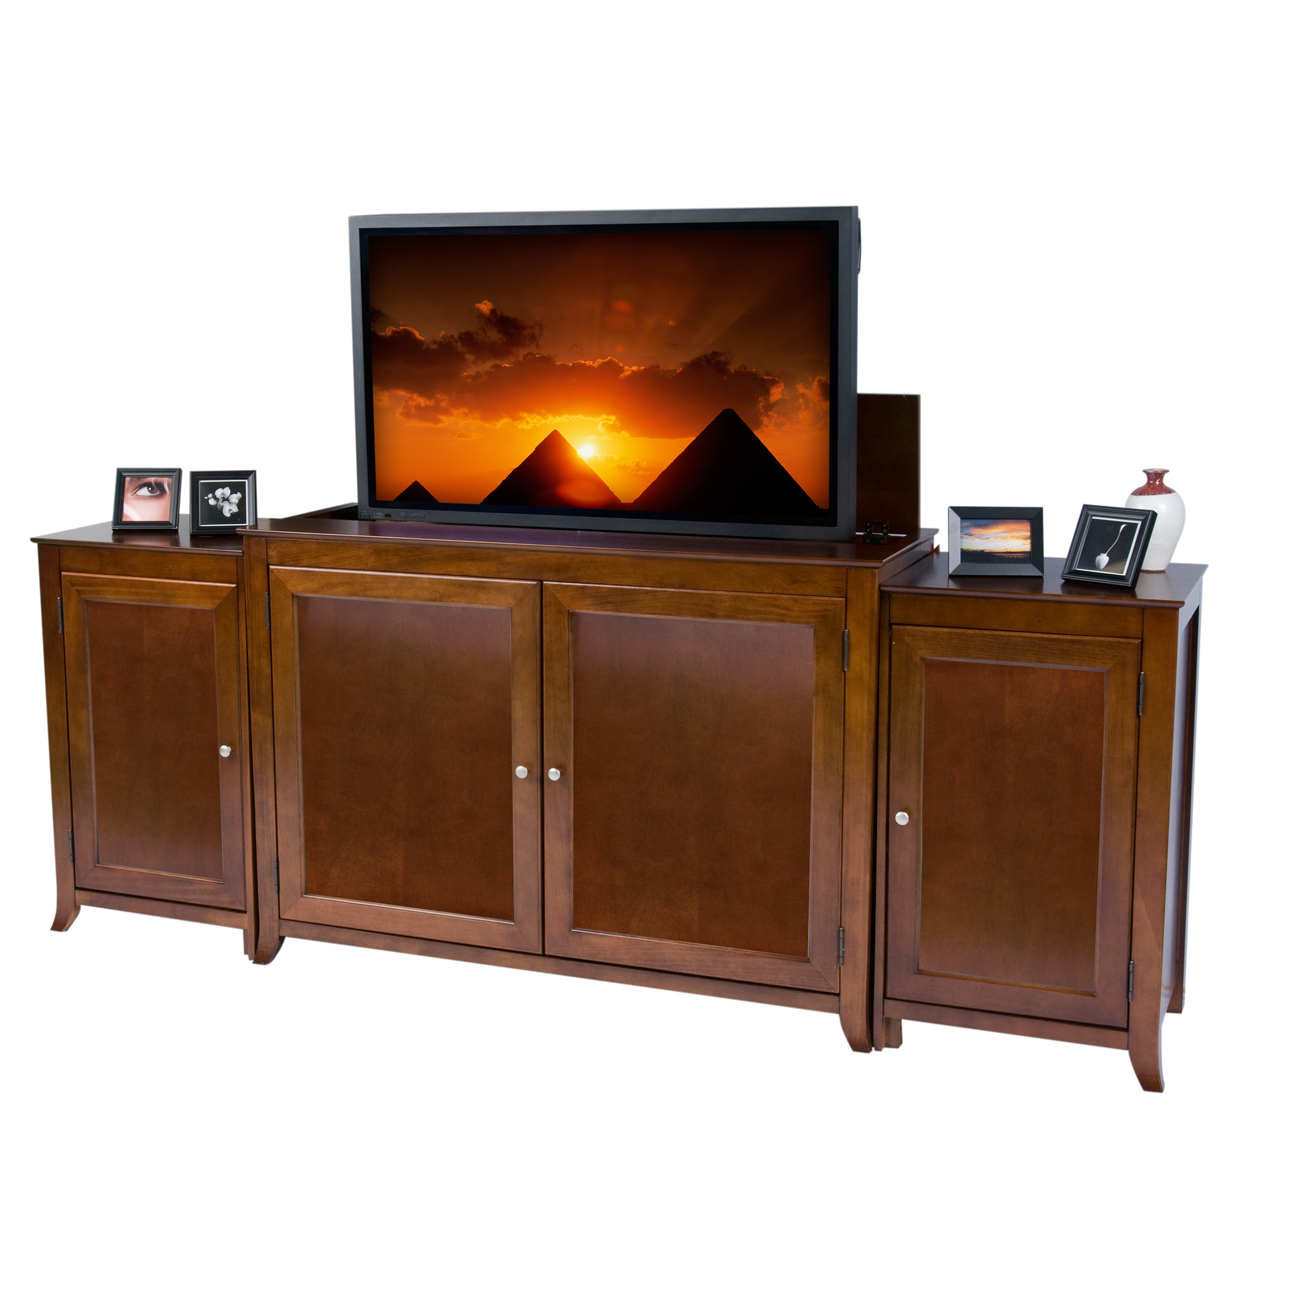 Side Cabinets For Living Room Brookside Cherry Tv Lift Cabinet With Sides For Flat Screen Tvs Up